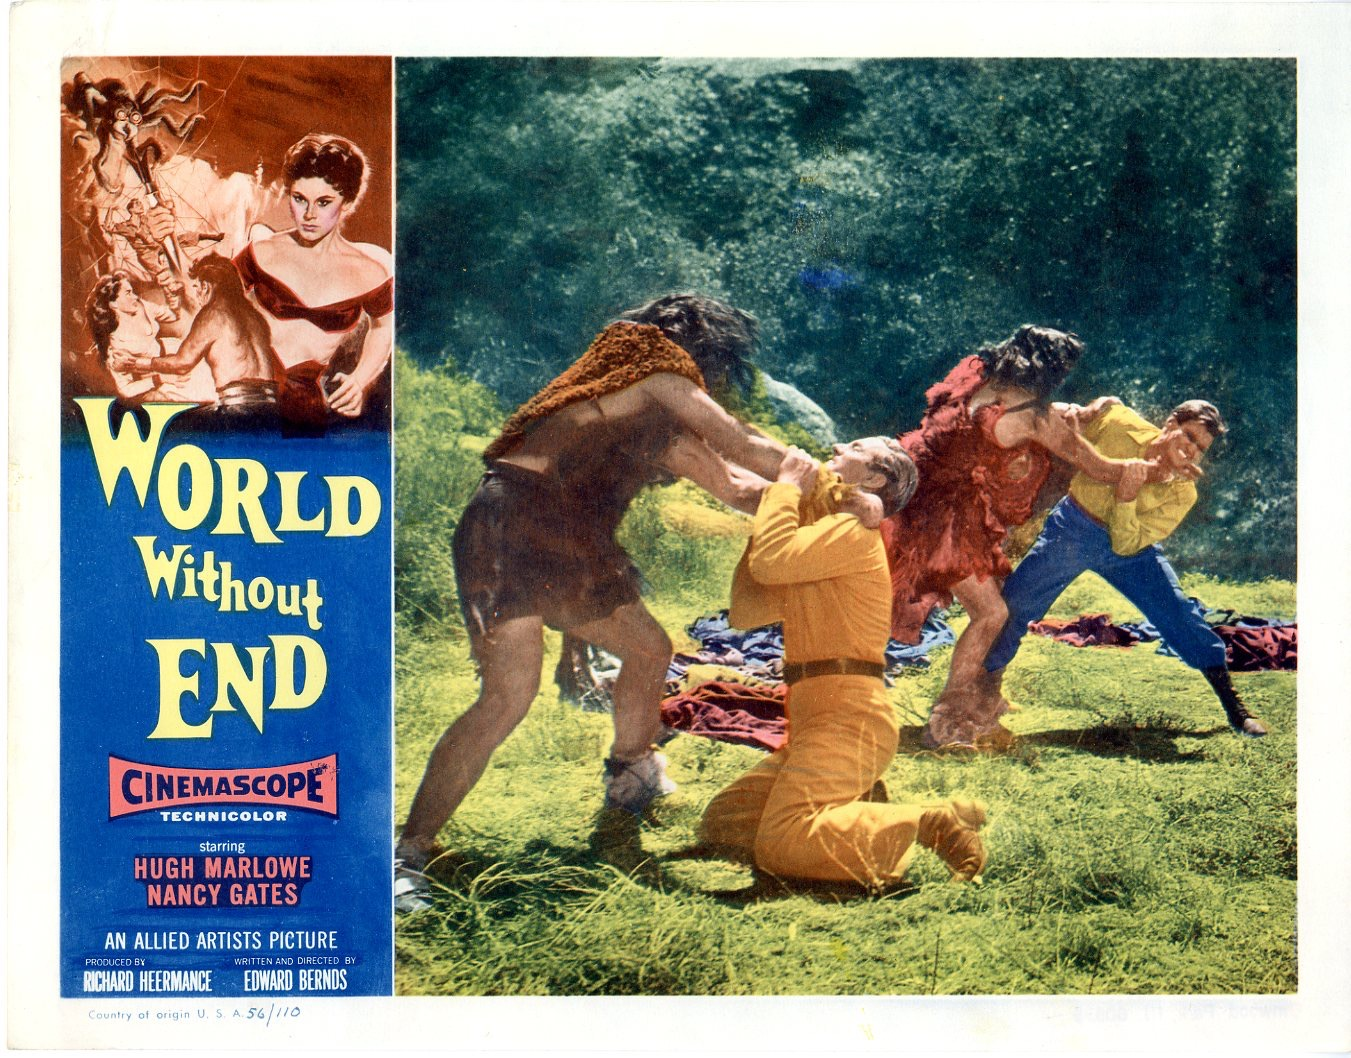 World Without End (1956)